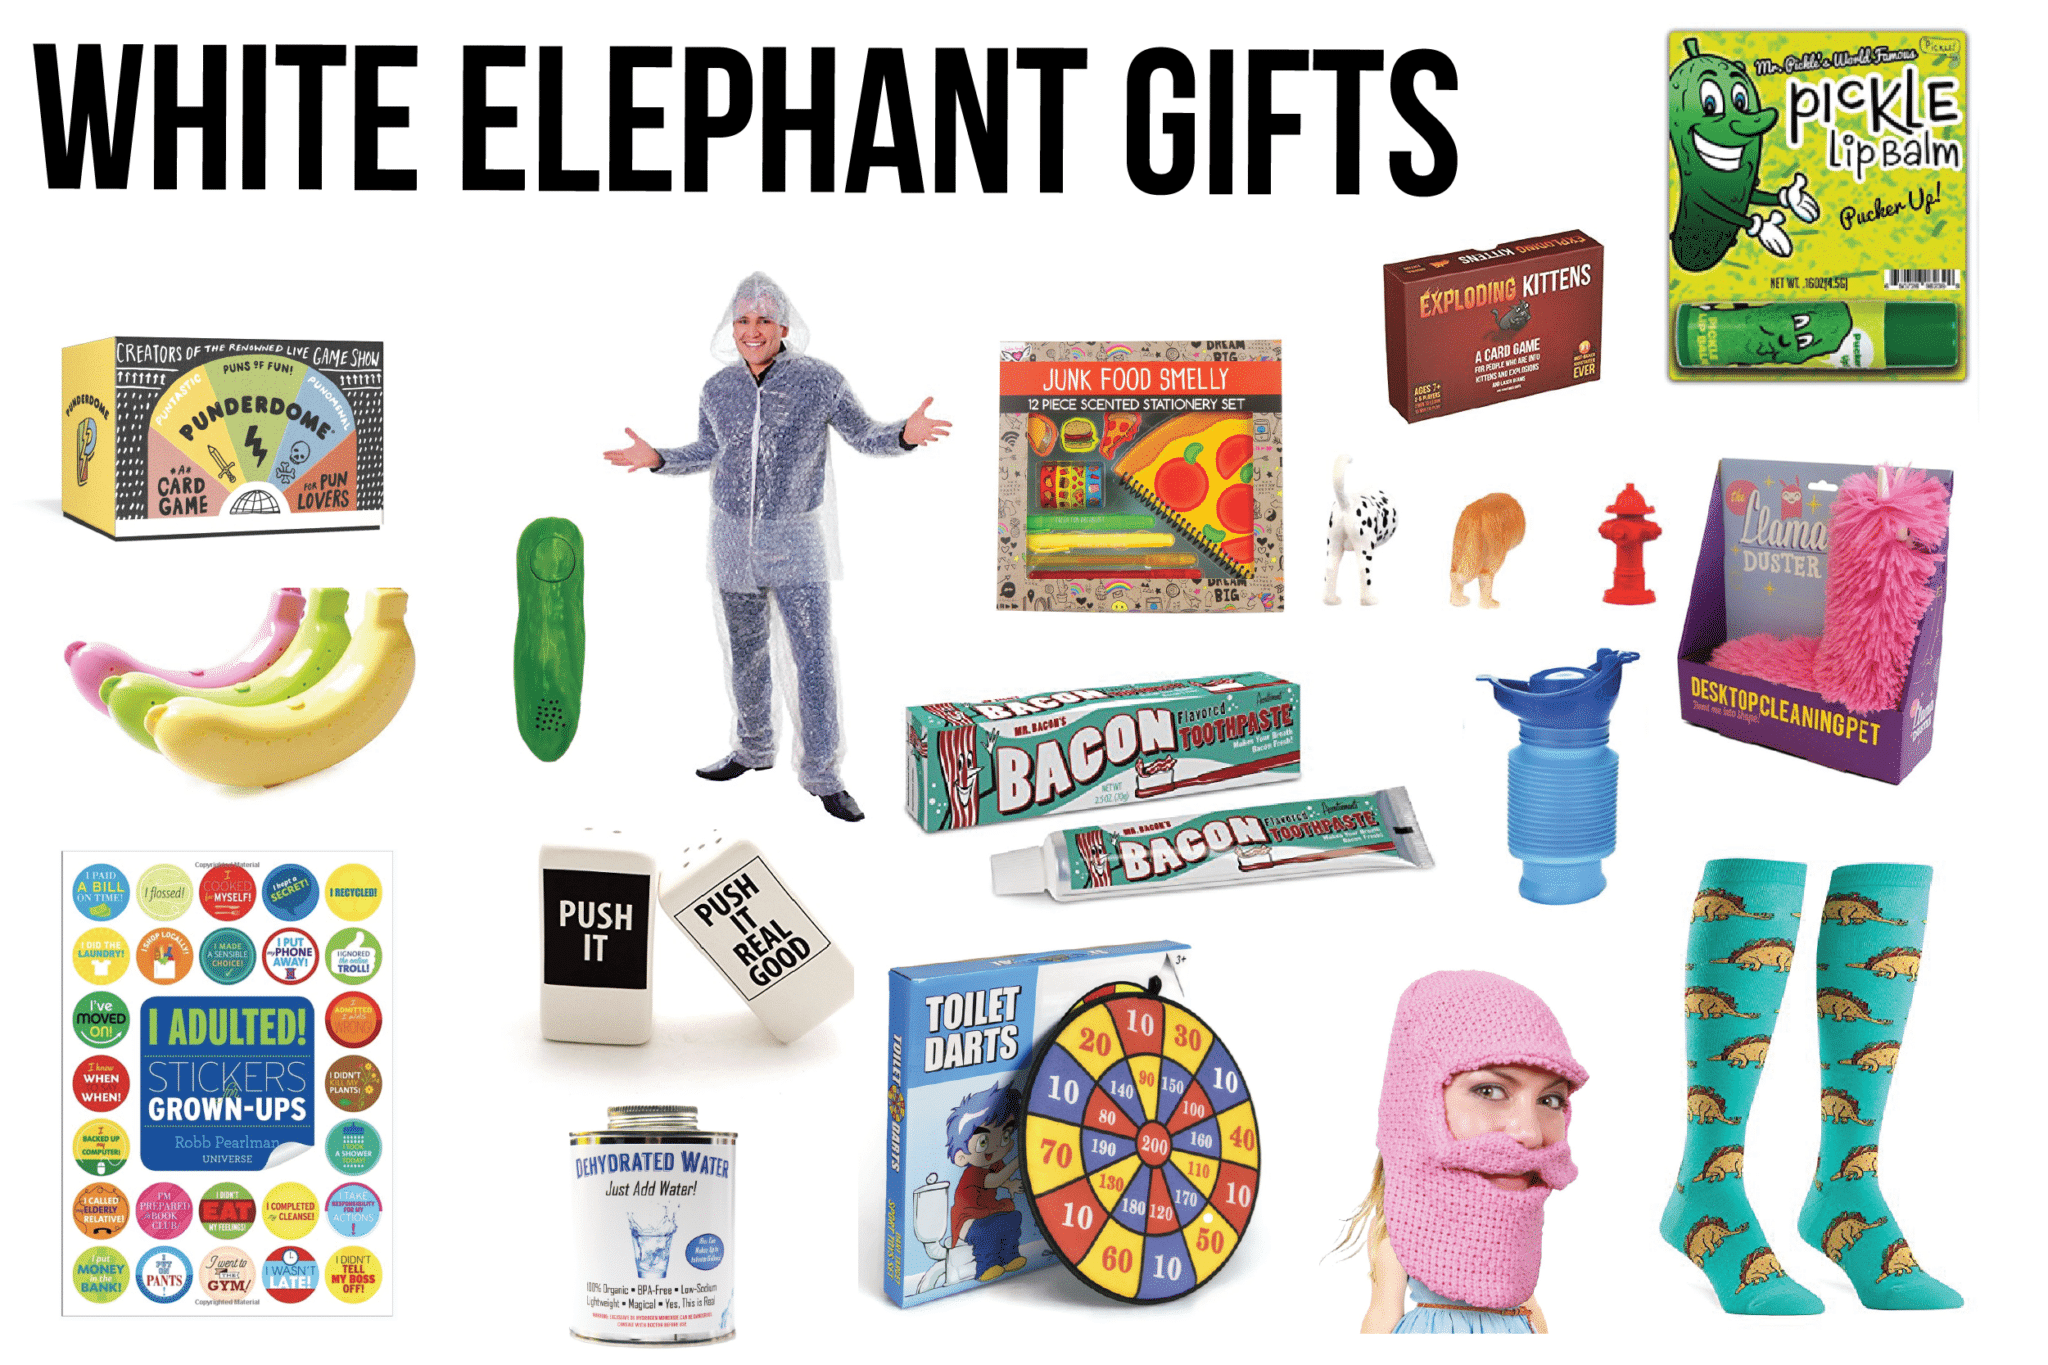 The best white elephant gifts ever along with white elephant rules, the definition of white elephant and more